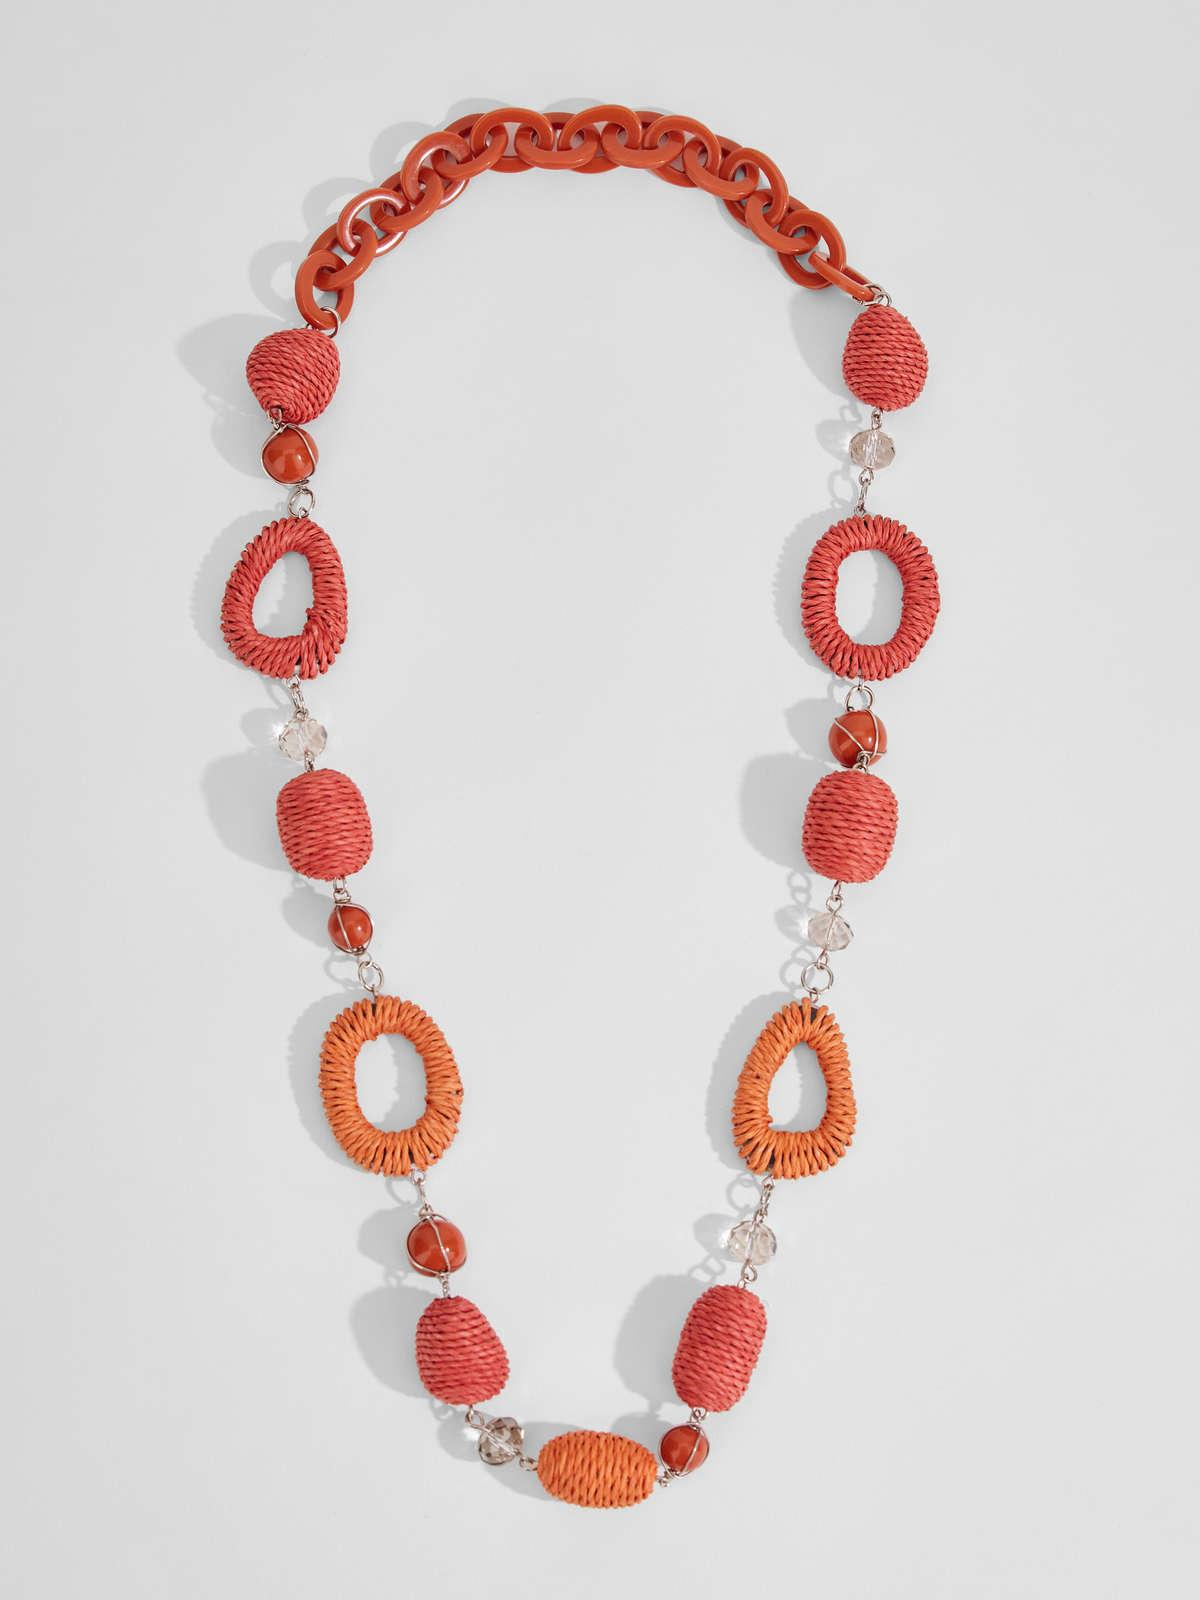 Womens Max Mara Jewelry | Rope And Straw Necklace Red